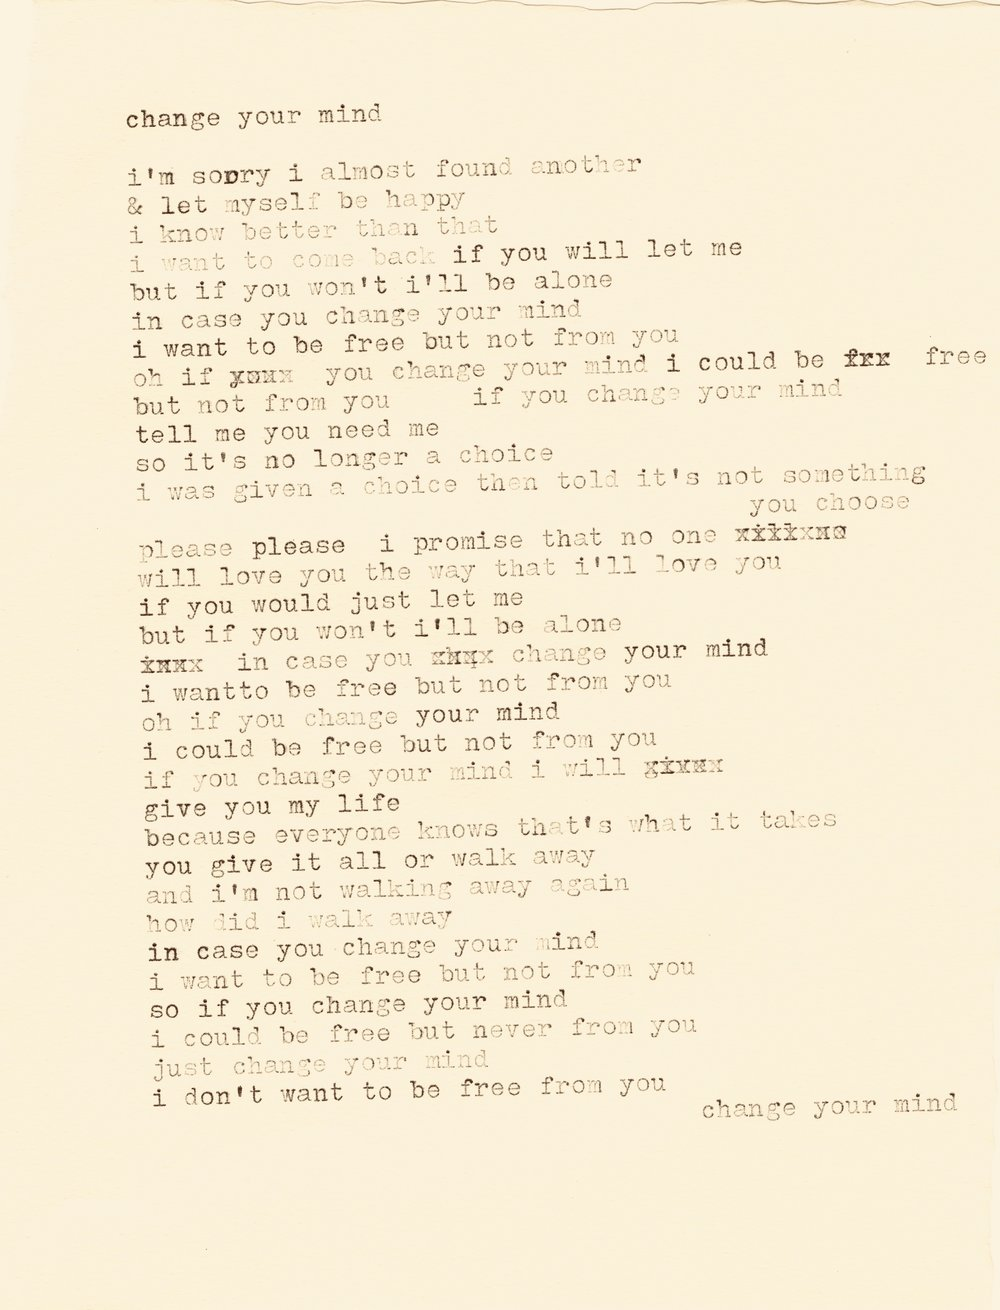 change your mind lyrics typewriter.jpg